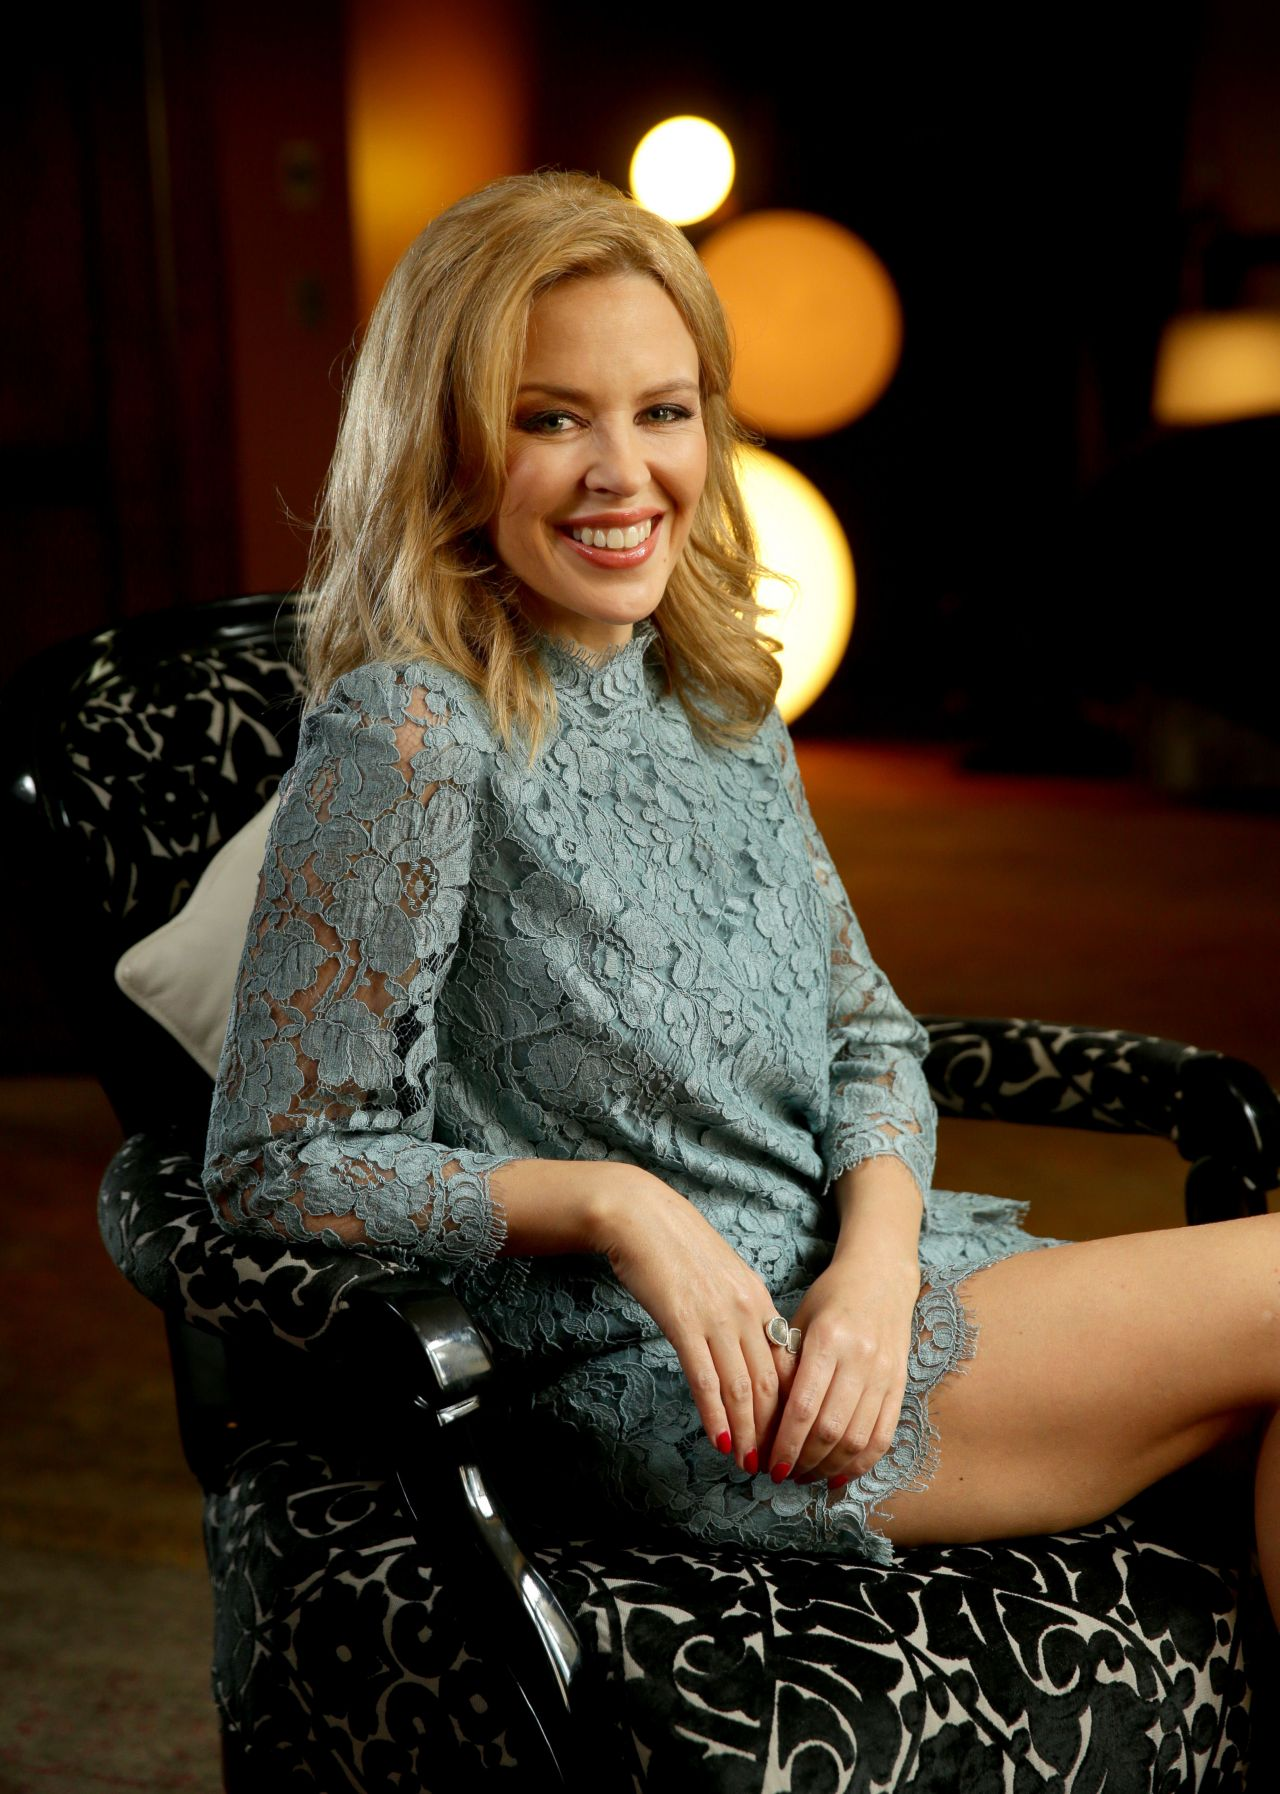 Kylie Minogue - Photoshoot at the QT Hotel in Sydney, Australia - April 2014